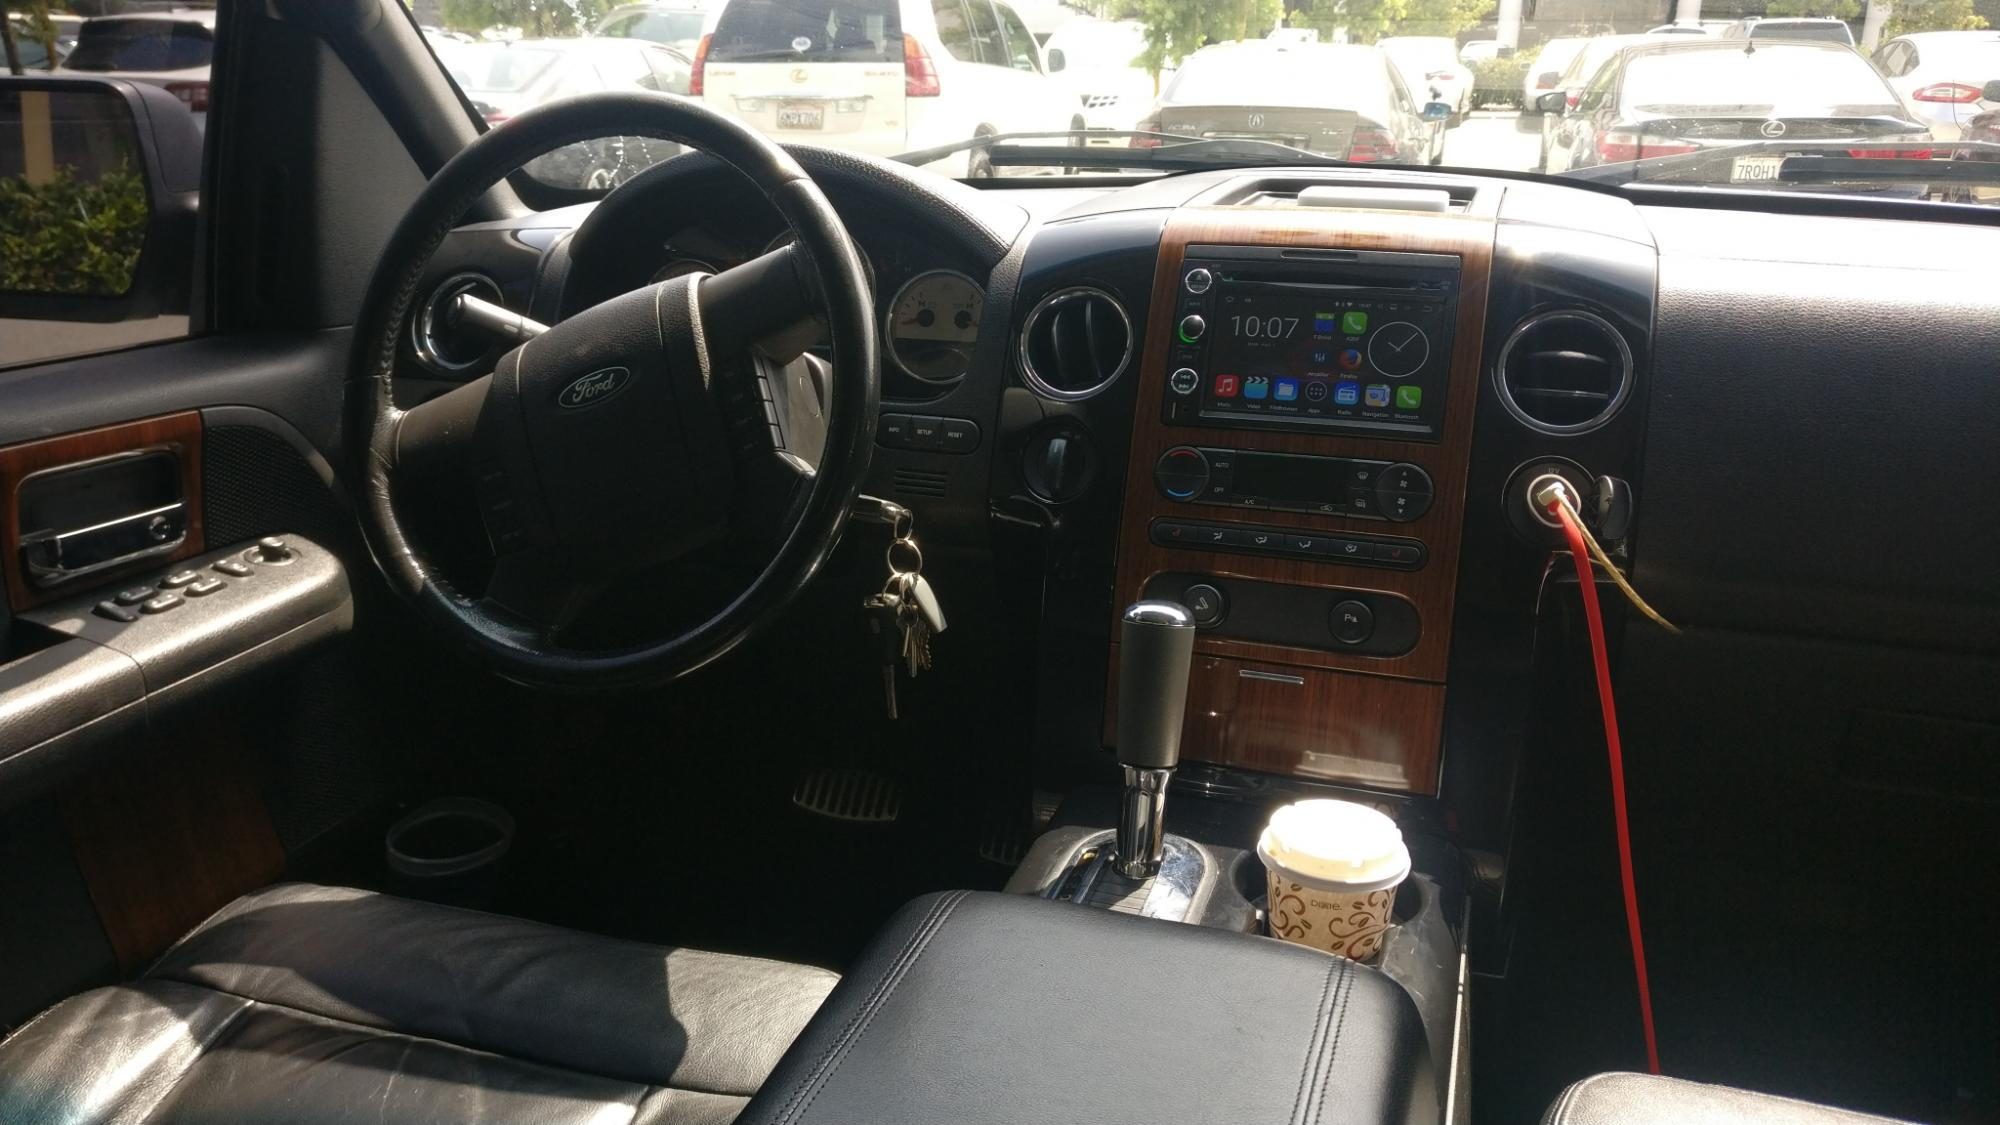 Eonon GA7173 Display Installed - Ford F150 Forum - Community of Ford